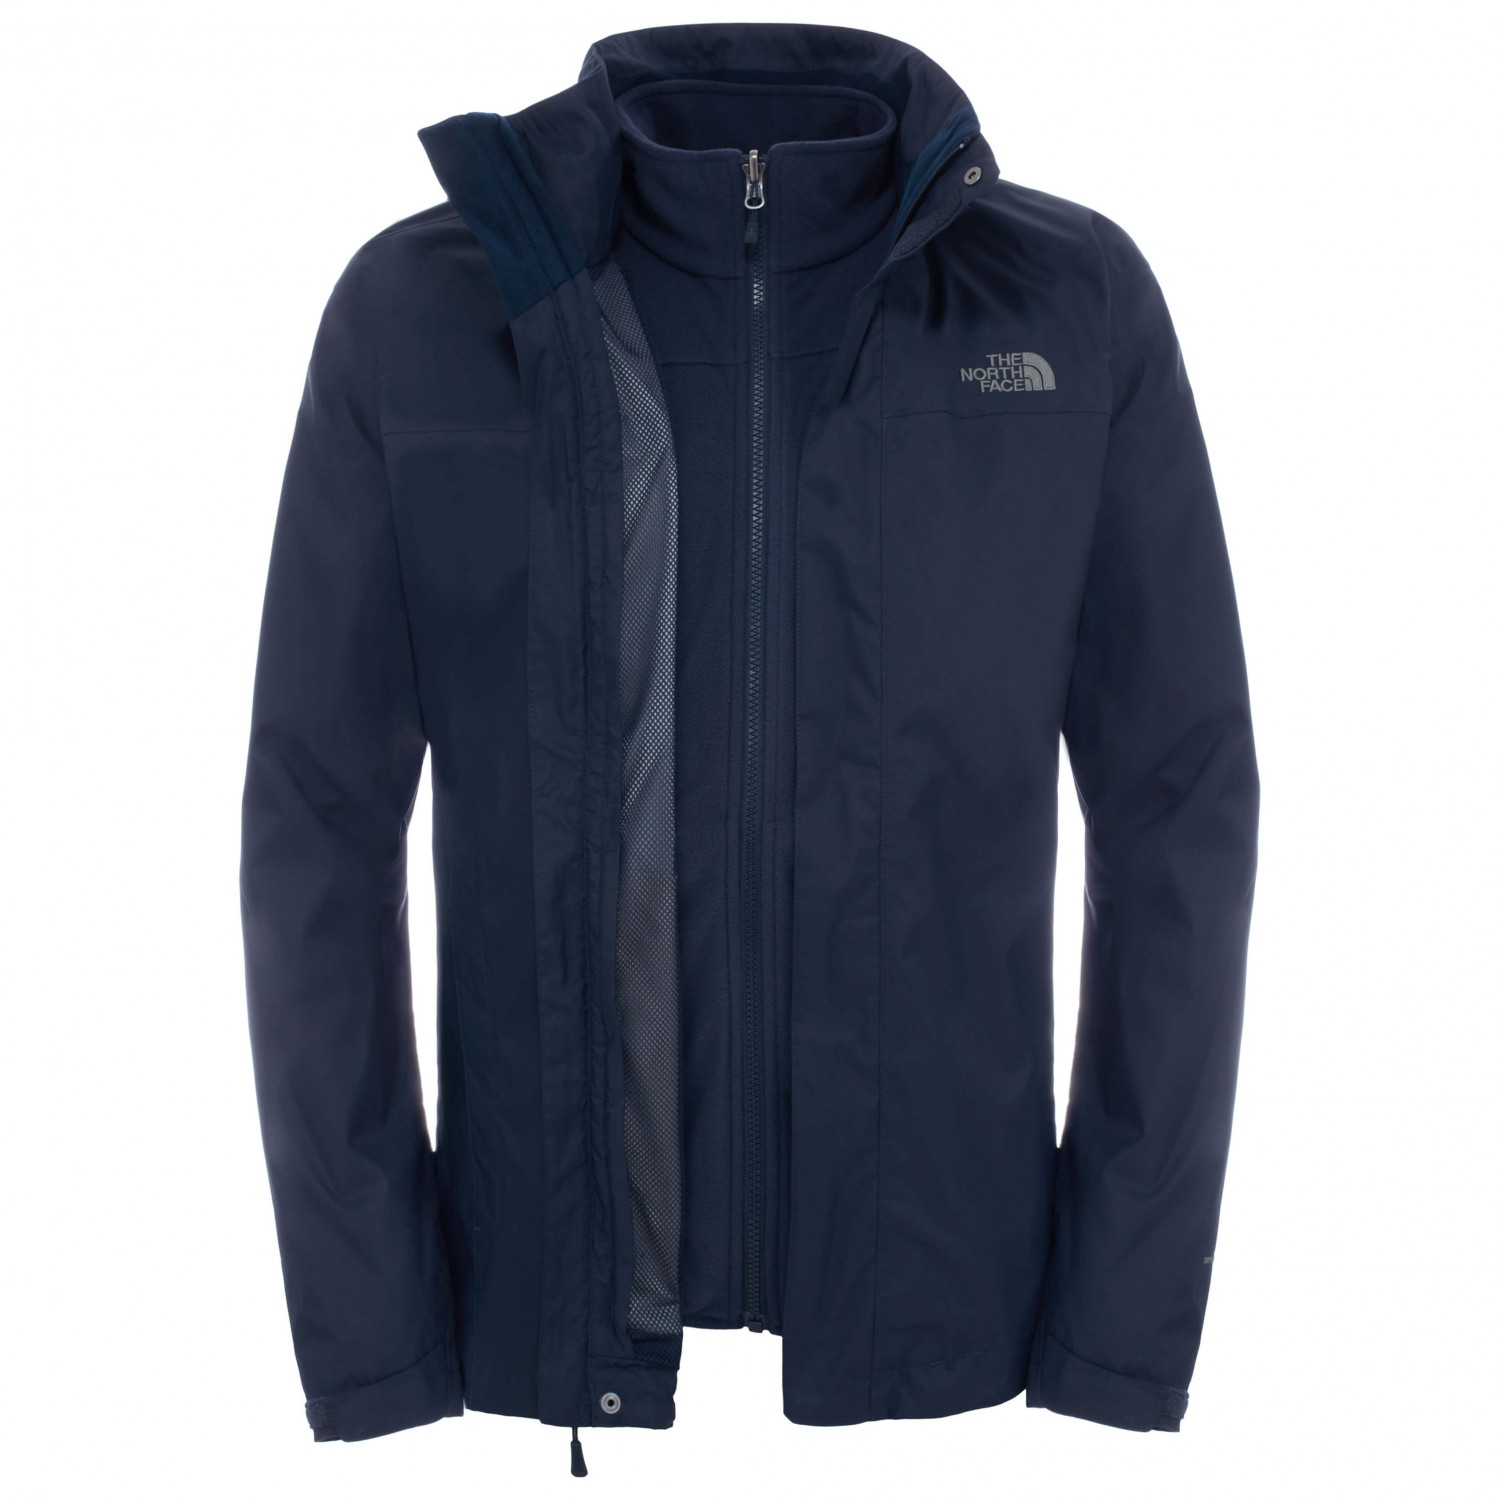 aa75f4d0ac The North Face Evolve II Triclimate Jacket - 3-In-1 Jacket Men's ...